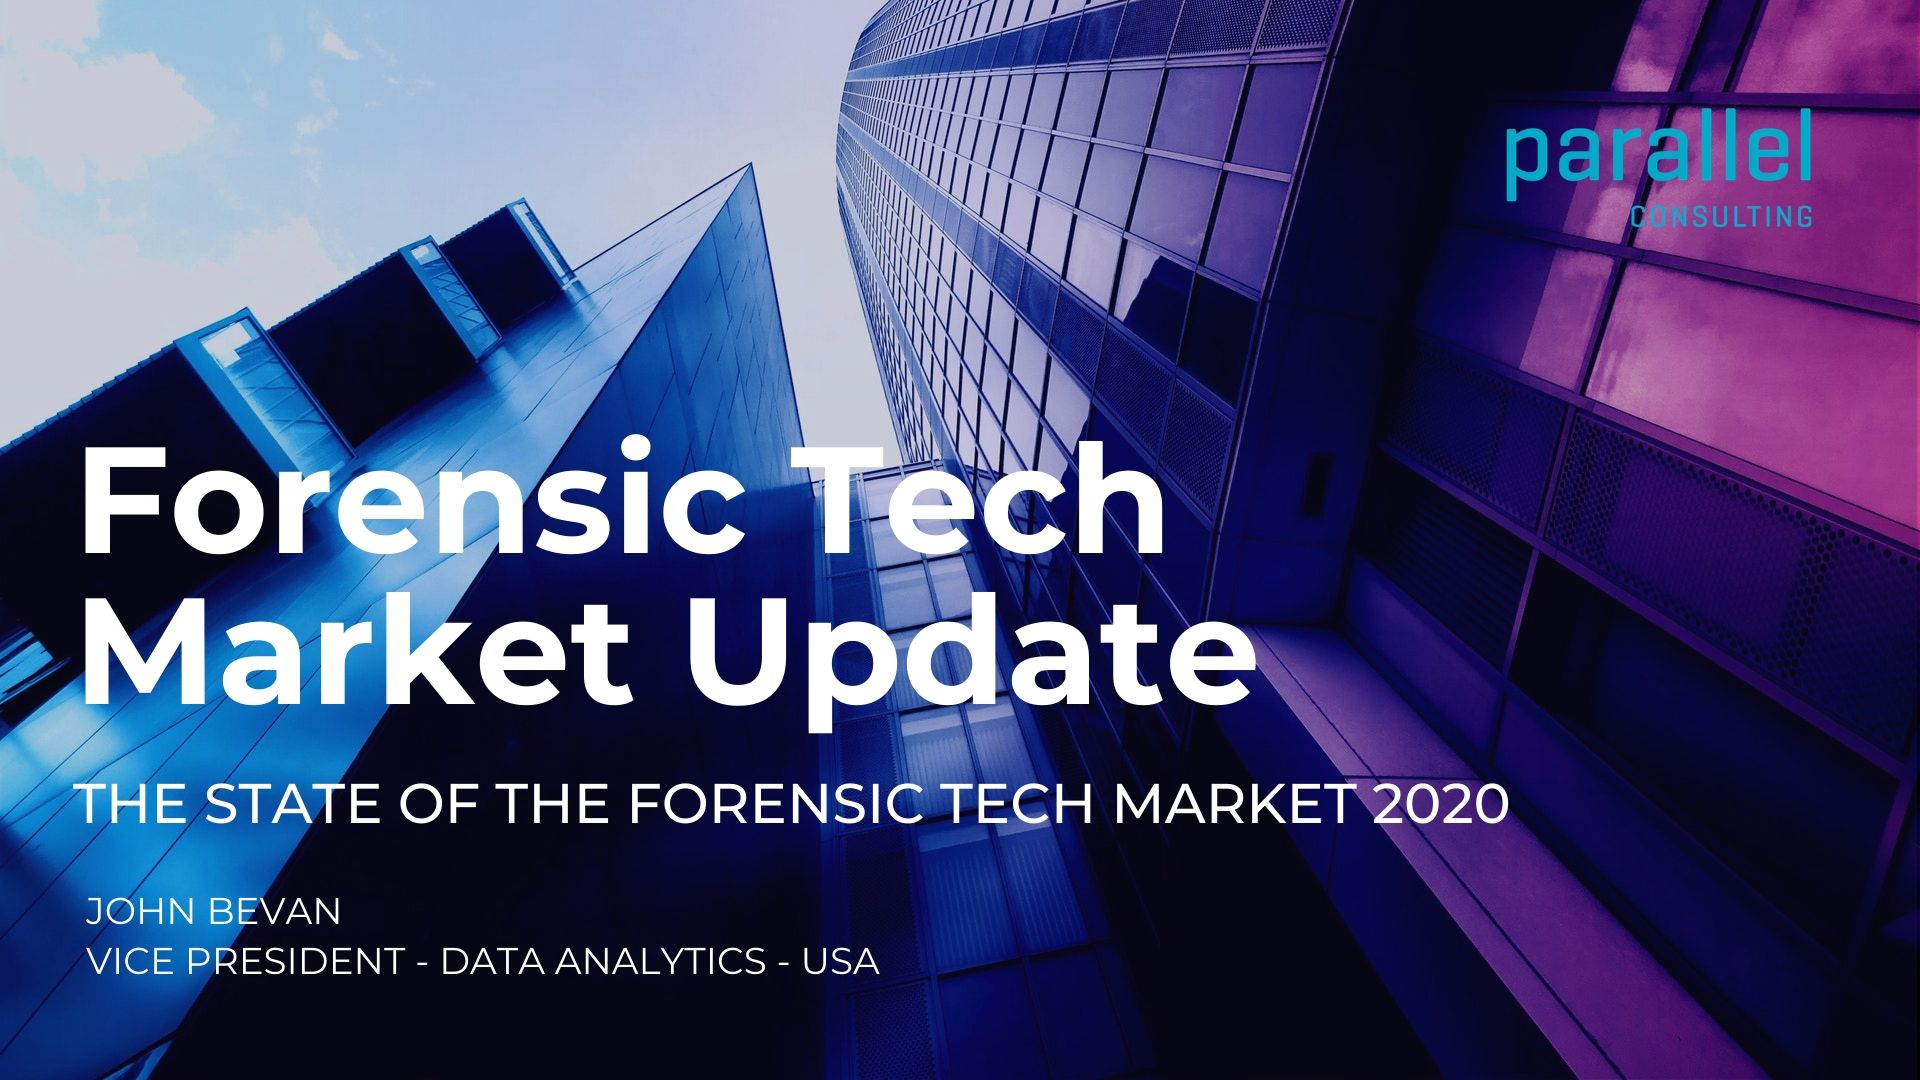 The State of the Forensic Technology Market in 2020